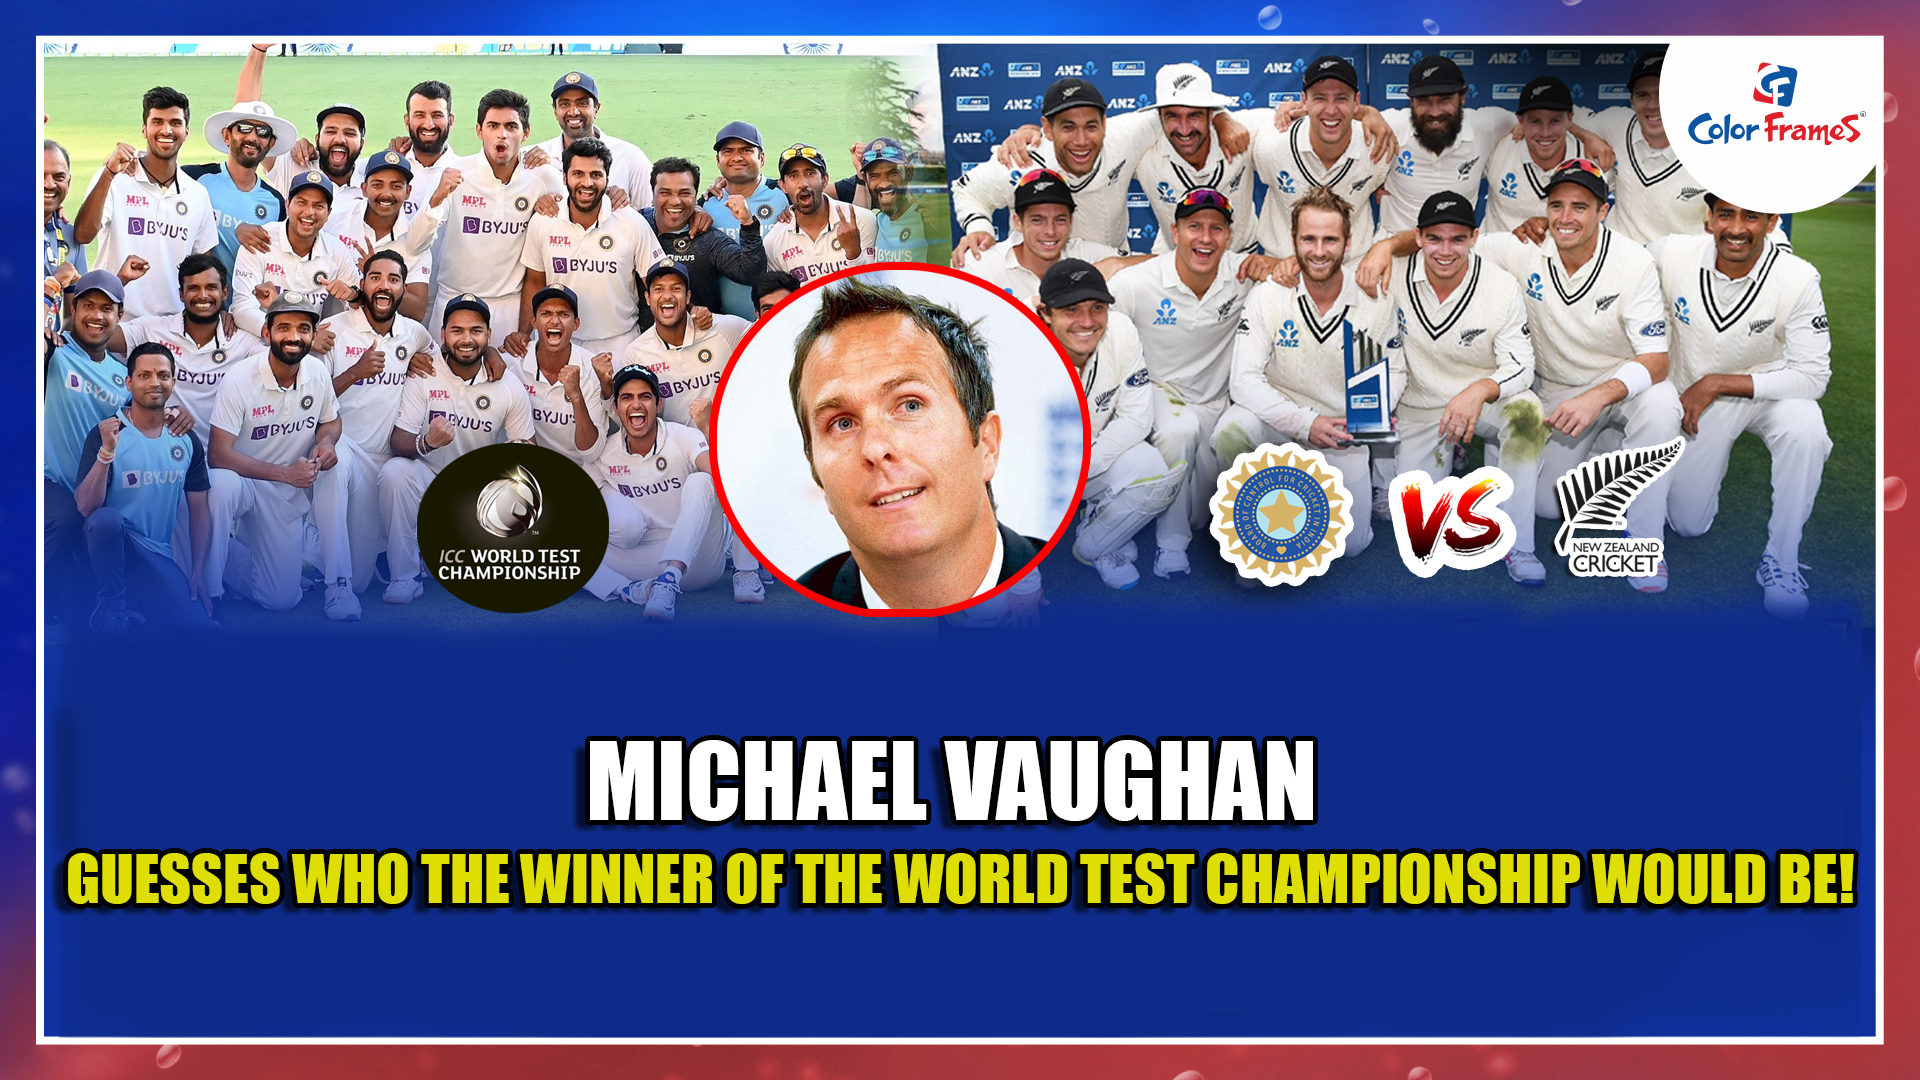 Michael Vaughan guesses who the winner of the World Test Championship would be!